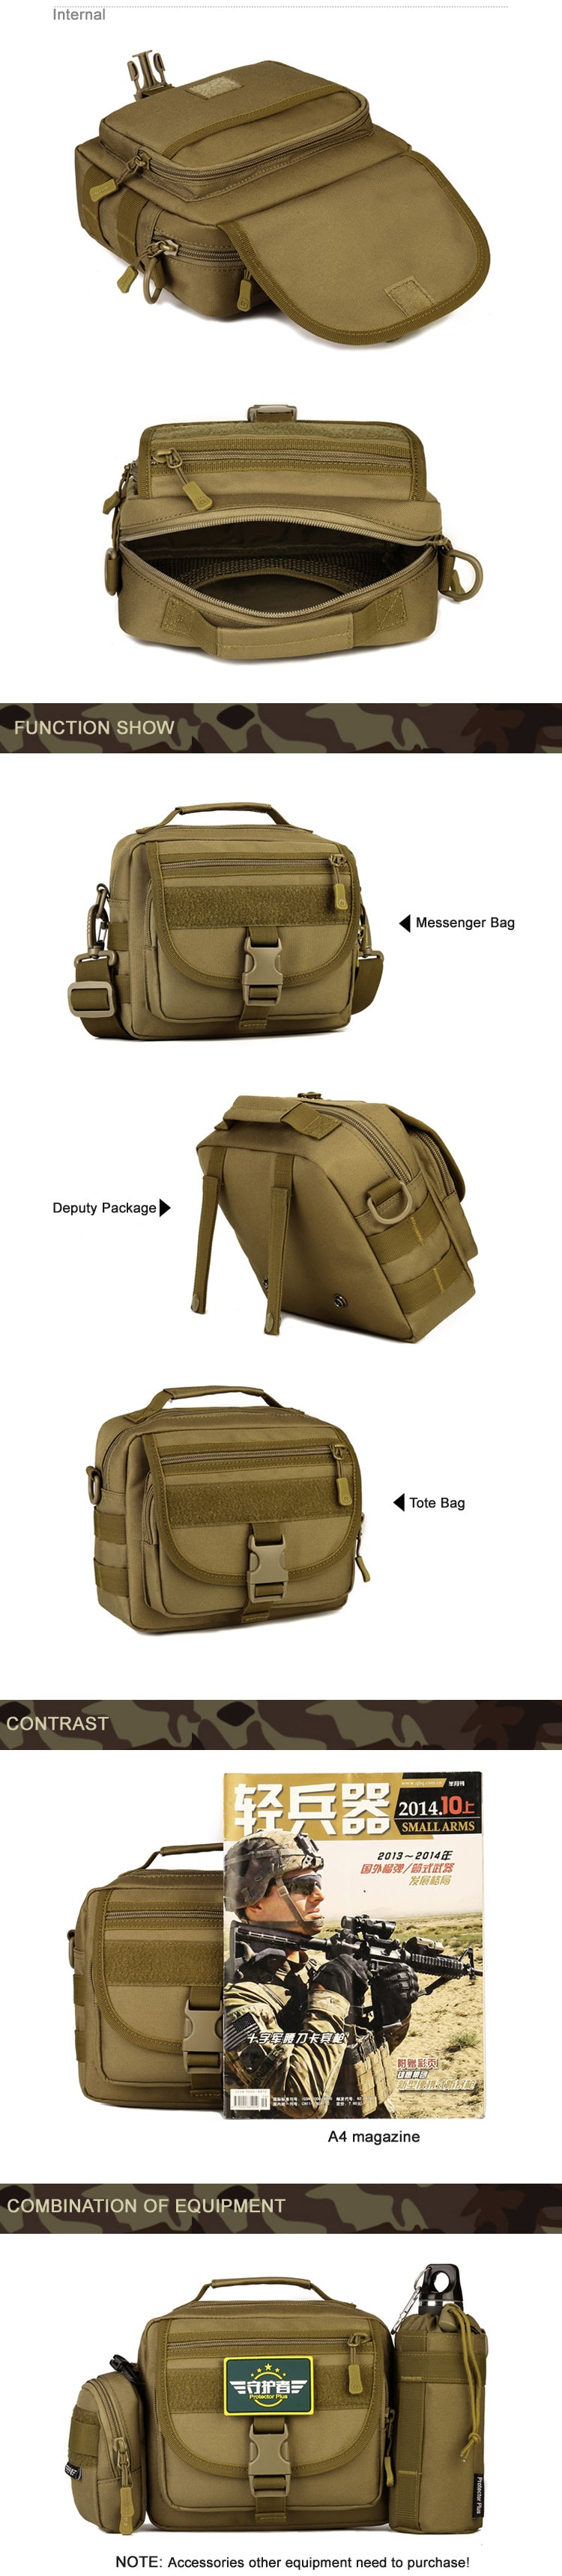 Tactical MOLLE Messenger Bag Travel Kit Bag EDC Pouch For Hiking Camping Fishing Hunting Military Tactical Shoulder Bag - 6 Colors